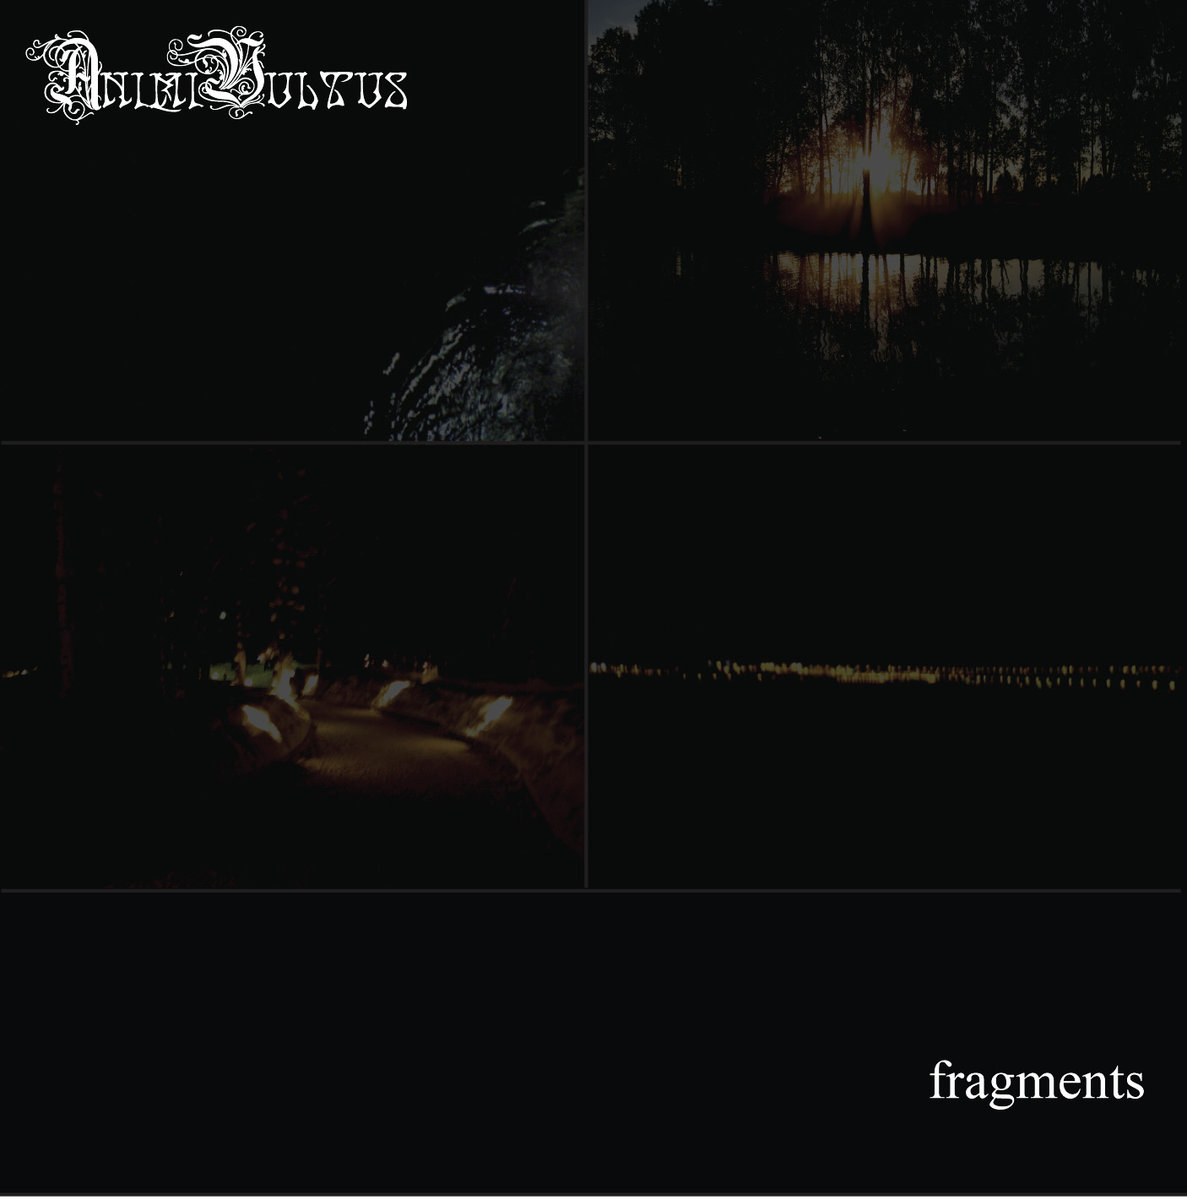 Fragments by Animi Vultus